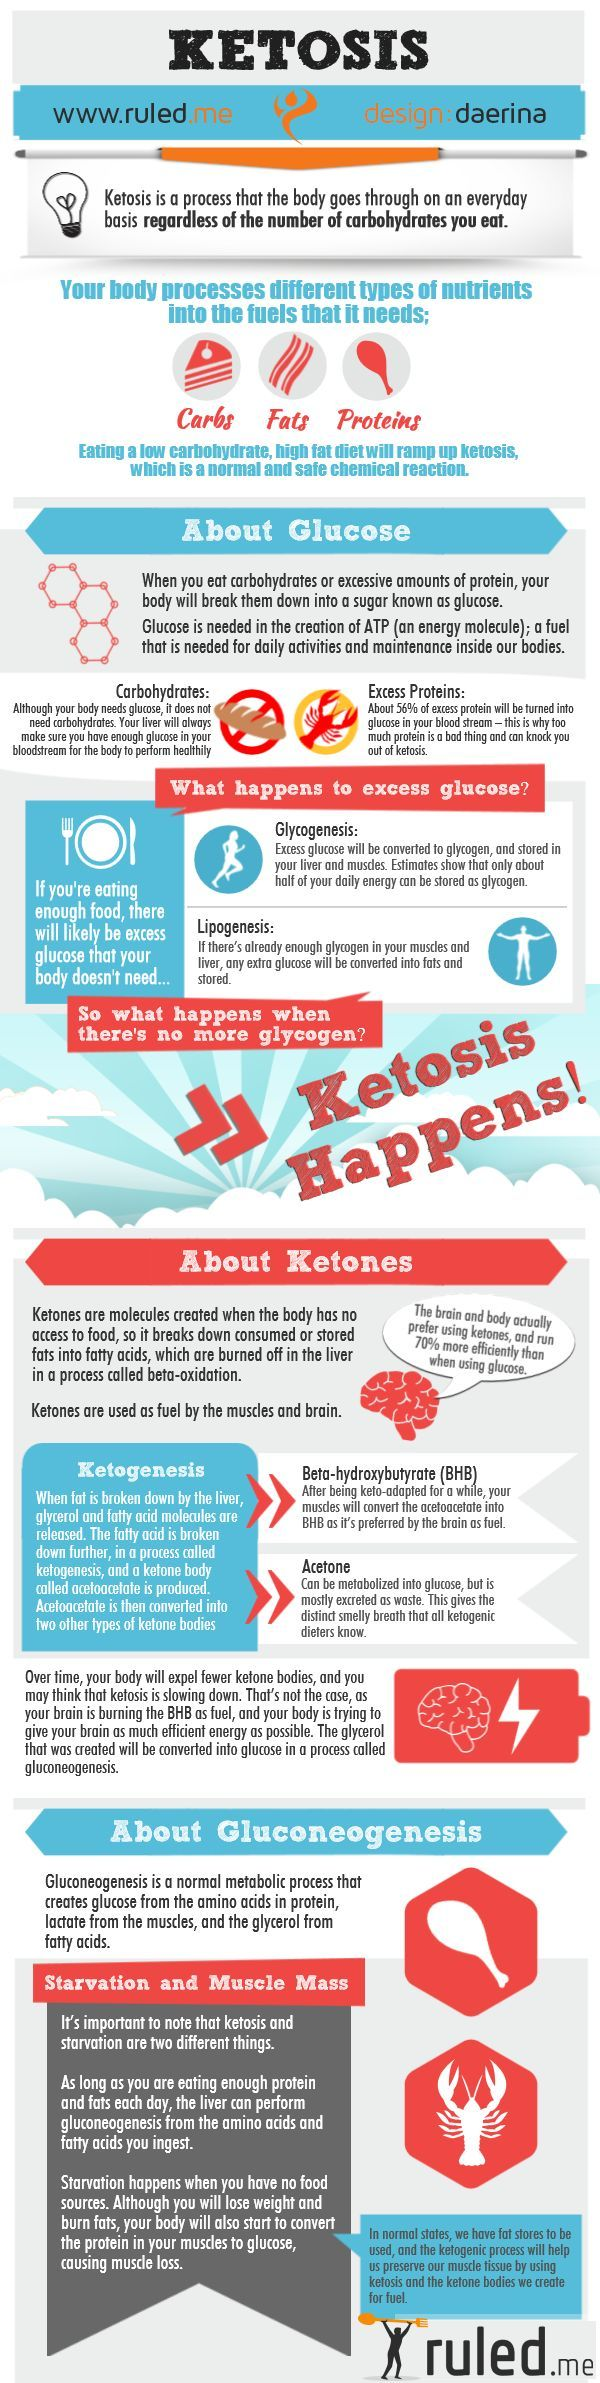 Fantastic Infographic about Ketosis, Ketones, and How it all Works! | Ruled Me